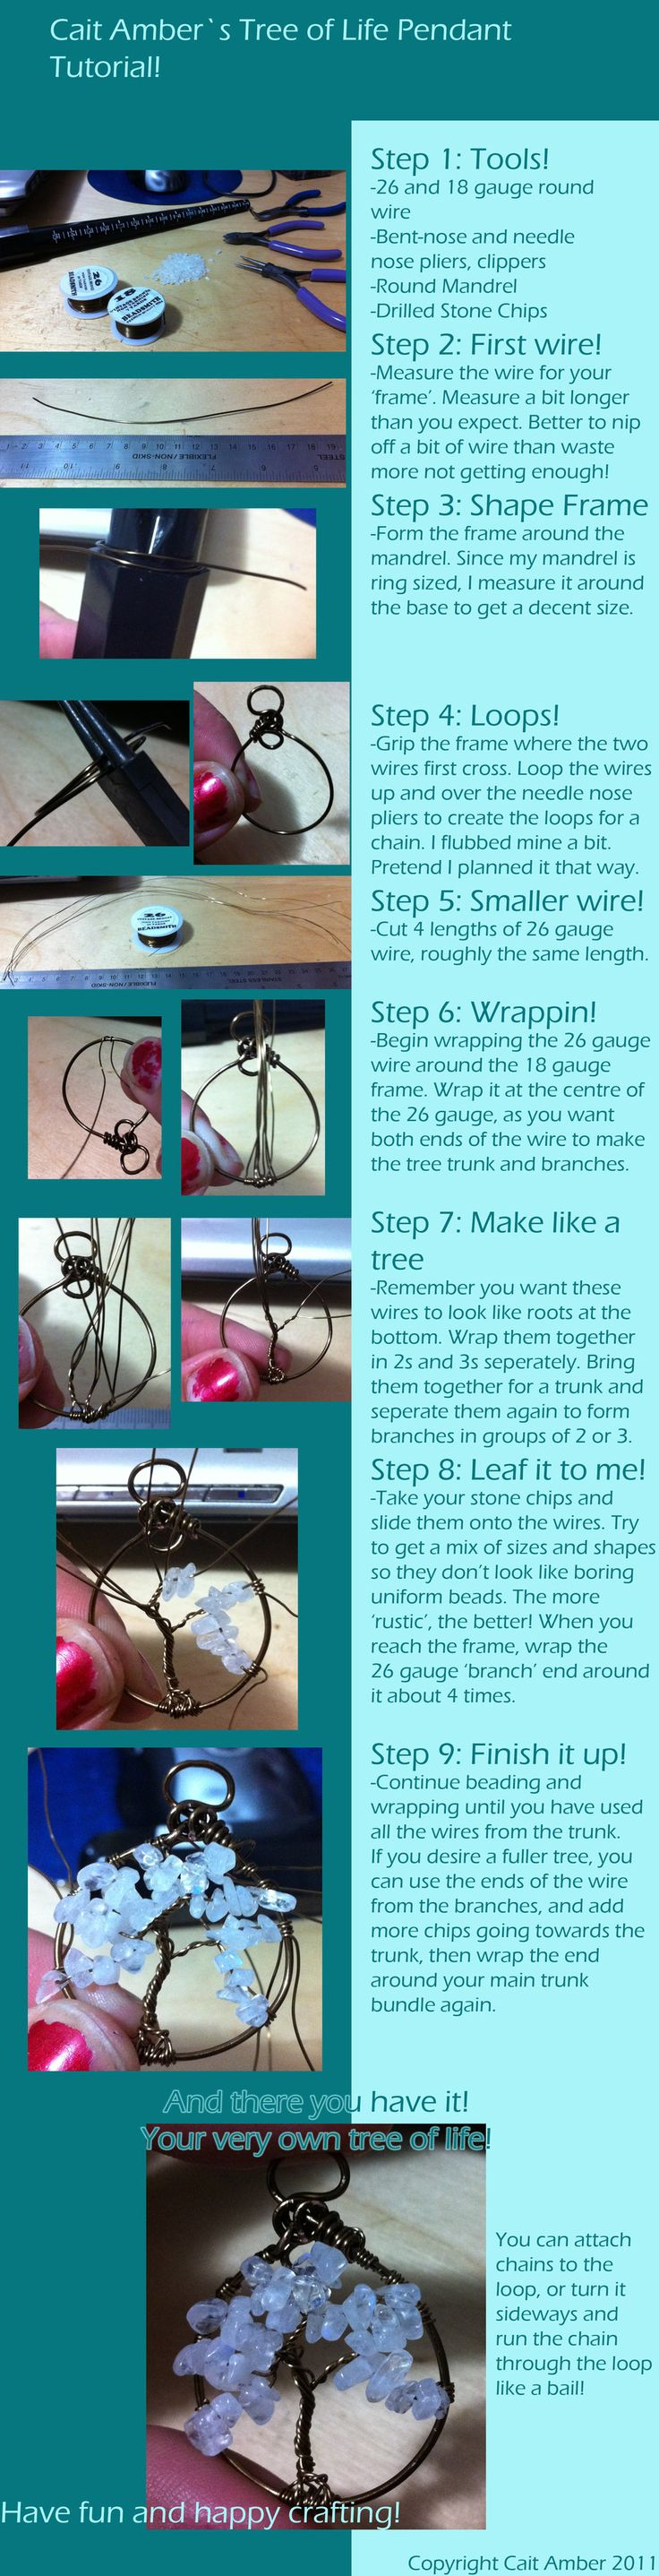 Tree of Life Pendant Tutorial by tanyquil on DeviantArt